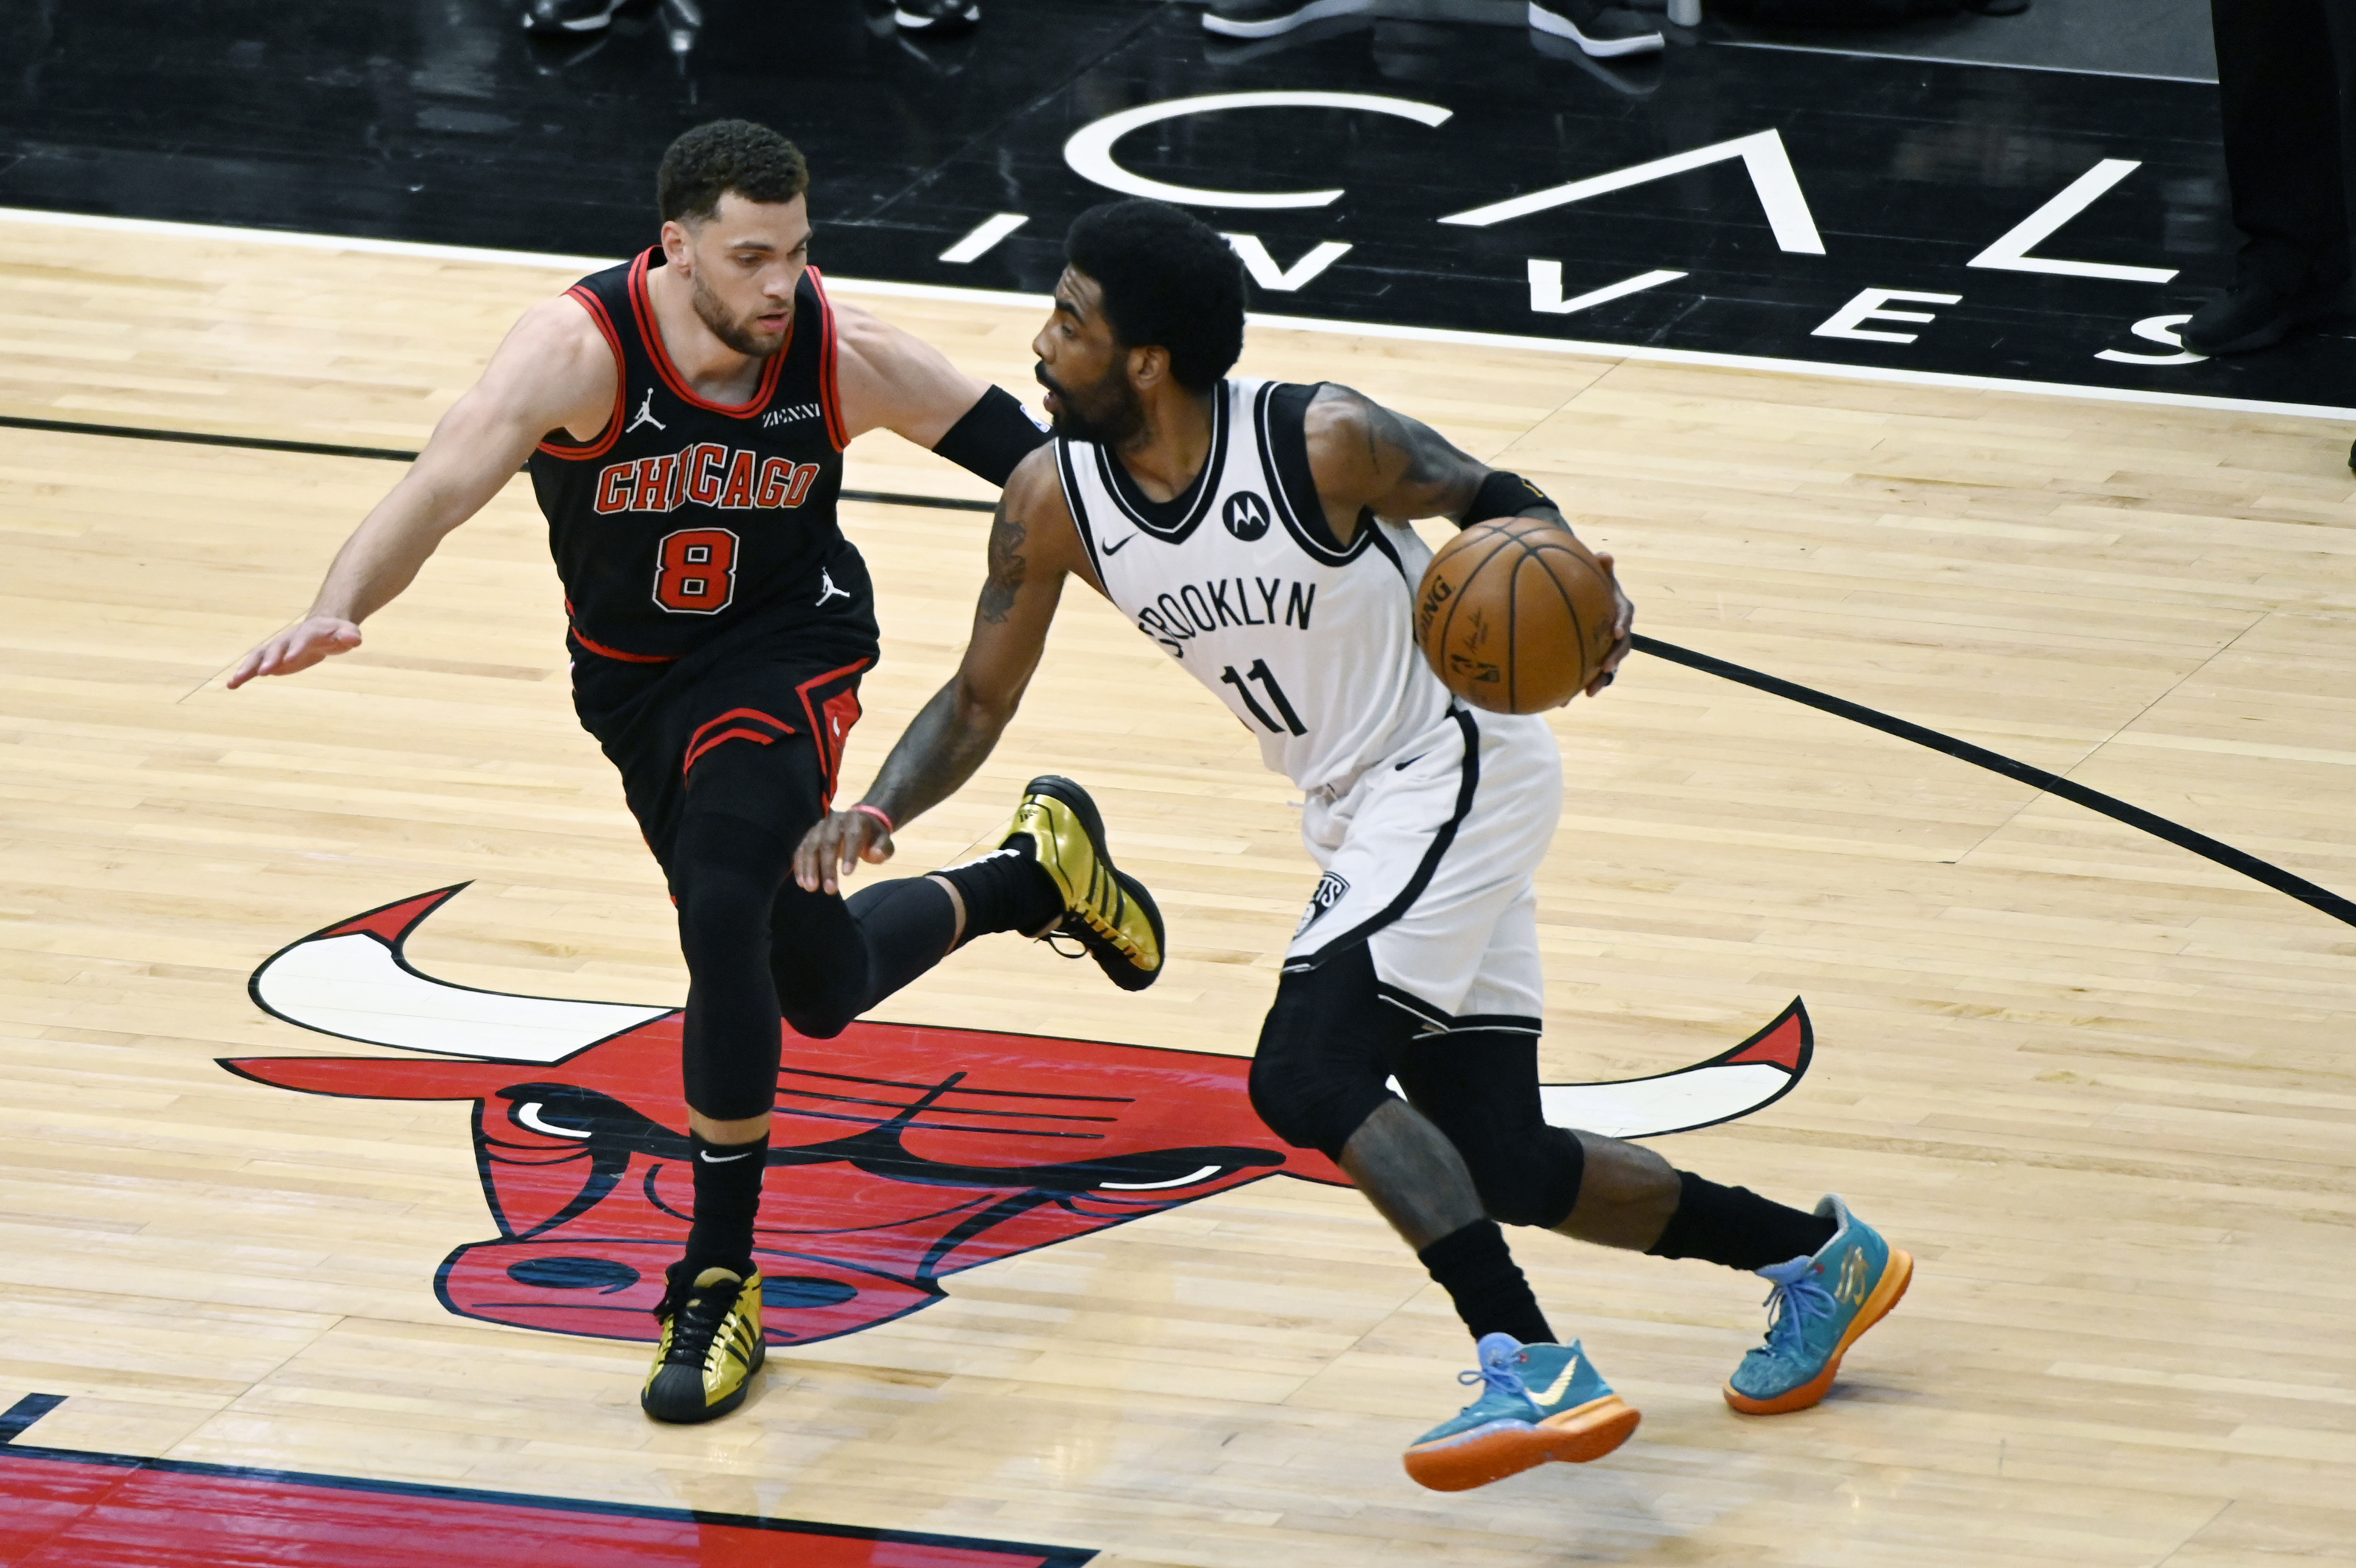 The Bulls' Zach LaVine is more concerned about his team than the drama surrounding Kyrie Irving and the Nets.